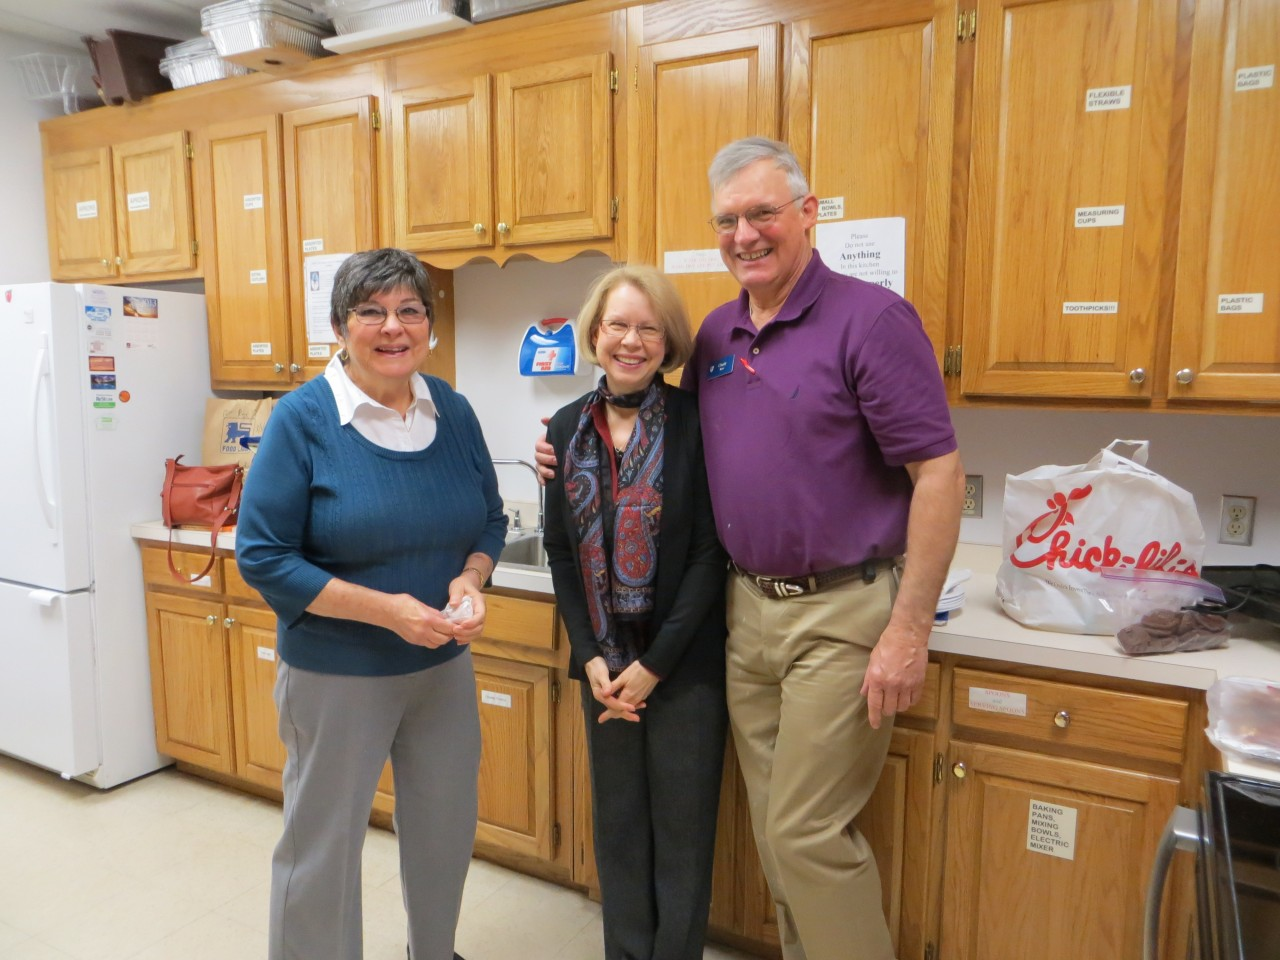 Sandy, Carolyn, and Charly are in the kitchen preparing food for Fellowship.